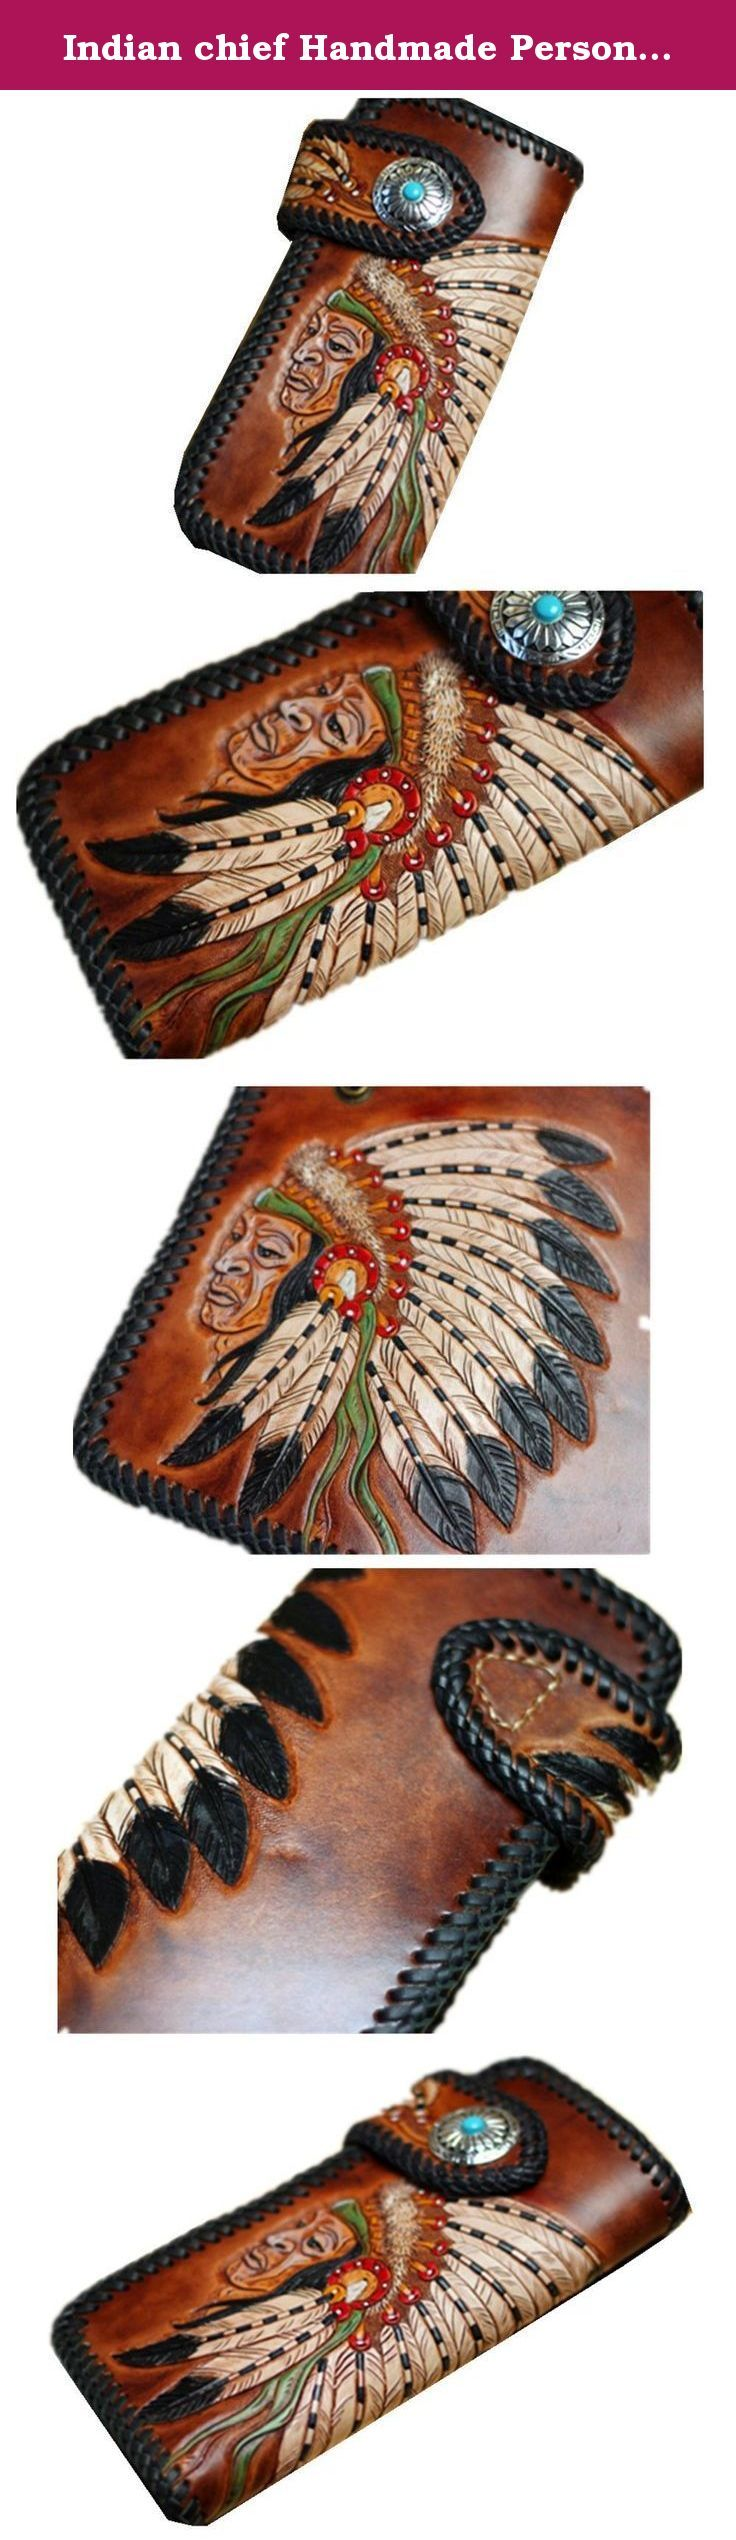 Indian chief Handmade Personalized Men's Leather Wallet Vegetable classics carving wallet purse card case Christmas Valentine's Day Gift. Handmade Personalized Men's Leather Wallet. This engraved leather wallet is the perfect men's gift. Design is elegant, composed in do not break.Delicate texture, decorative pattern, carver is exquisite.With the passage of time, it will present a belongs to the color of your personality and sense of history. It's a great gift for groomsmen, boyfriends...